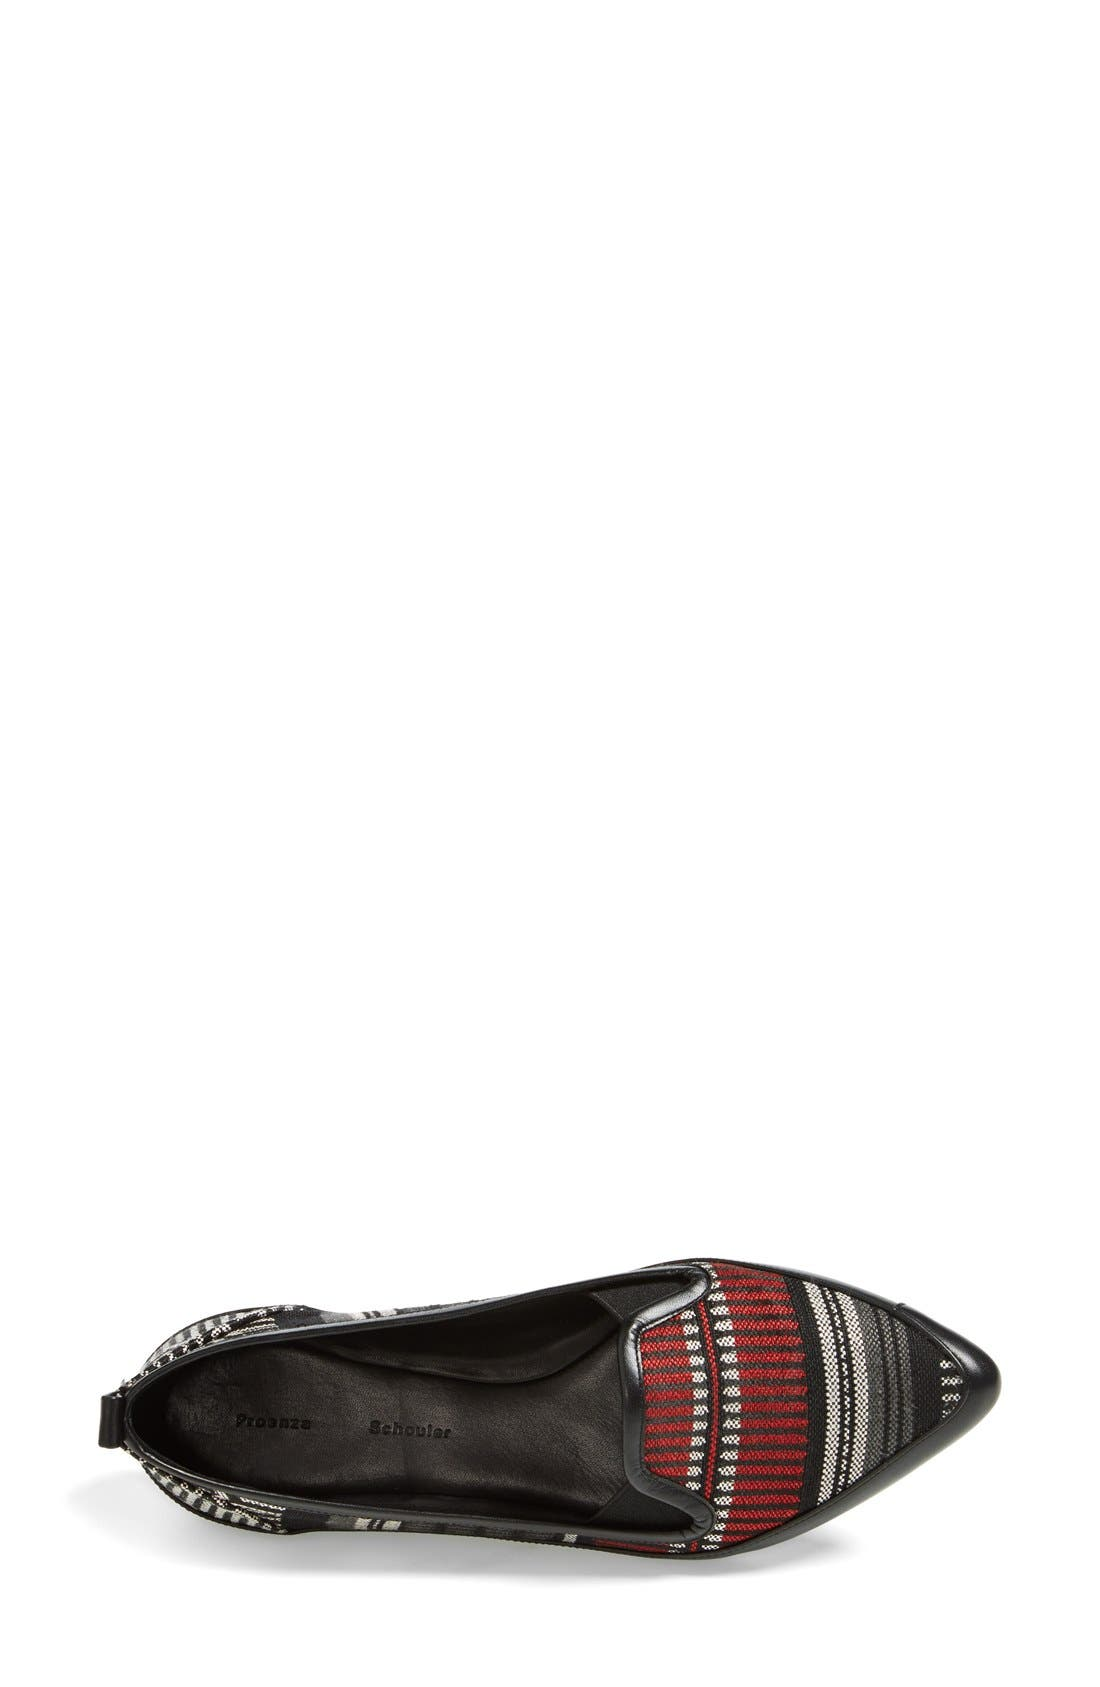 Alternate Image 3  - Proenza Schouler Pointy Toe Moccasin